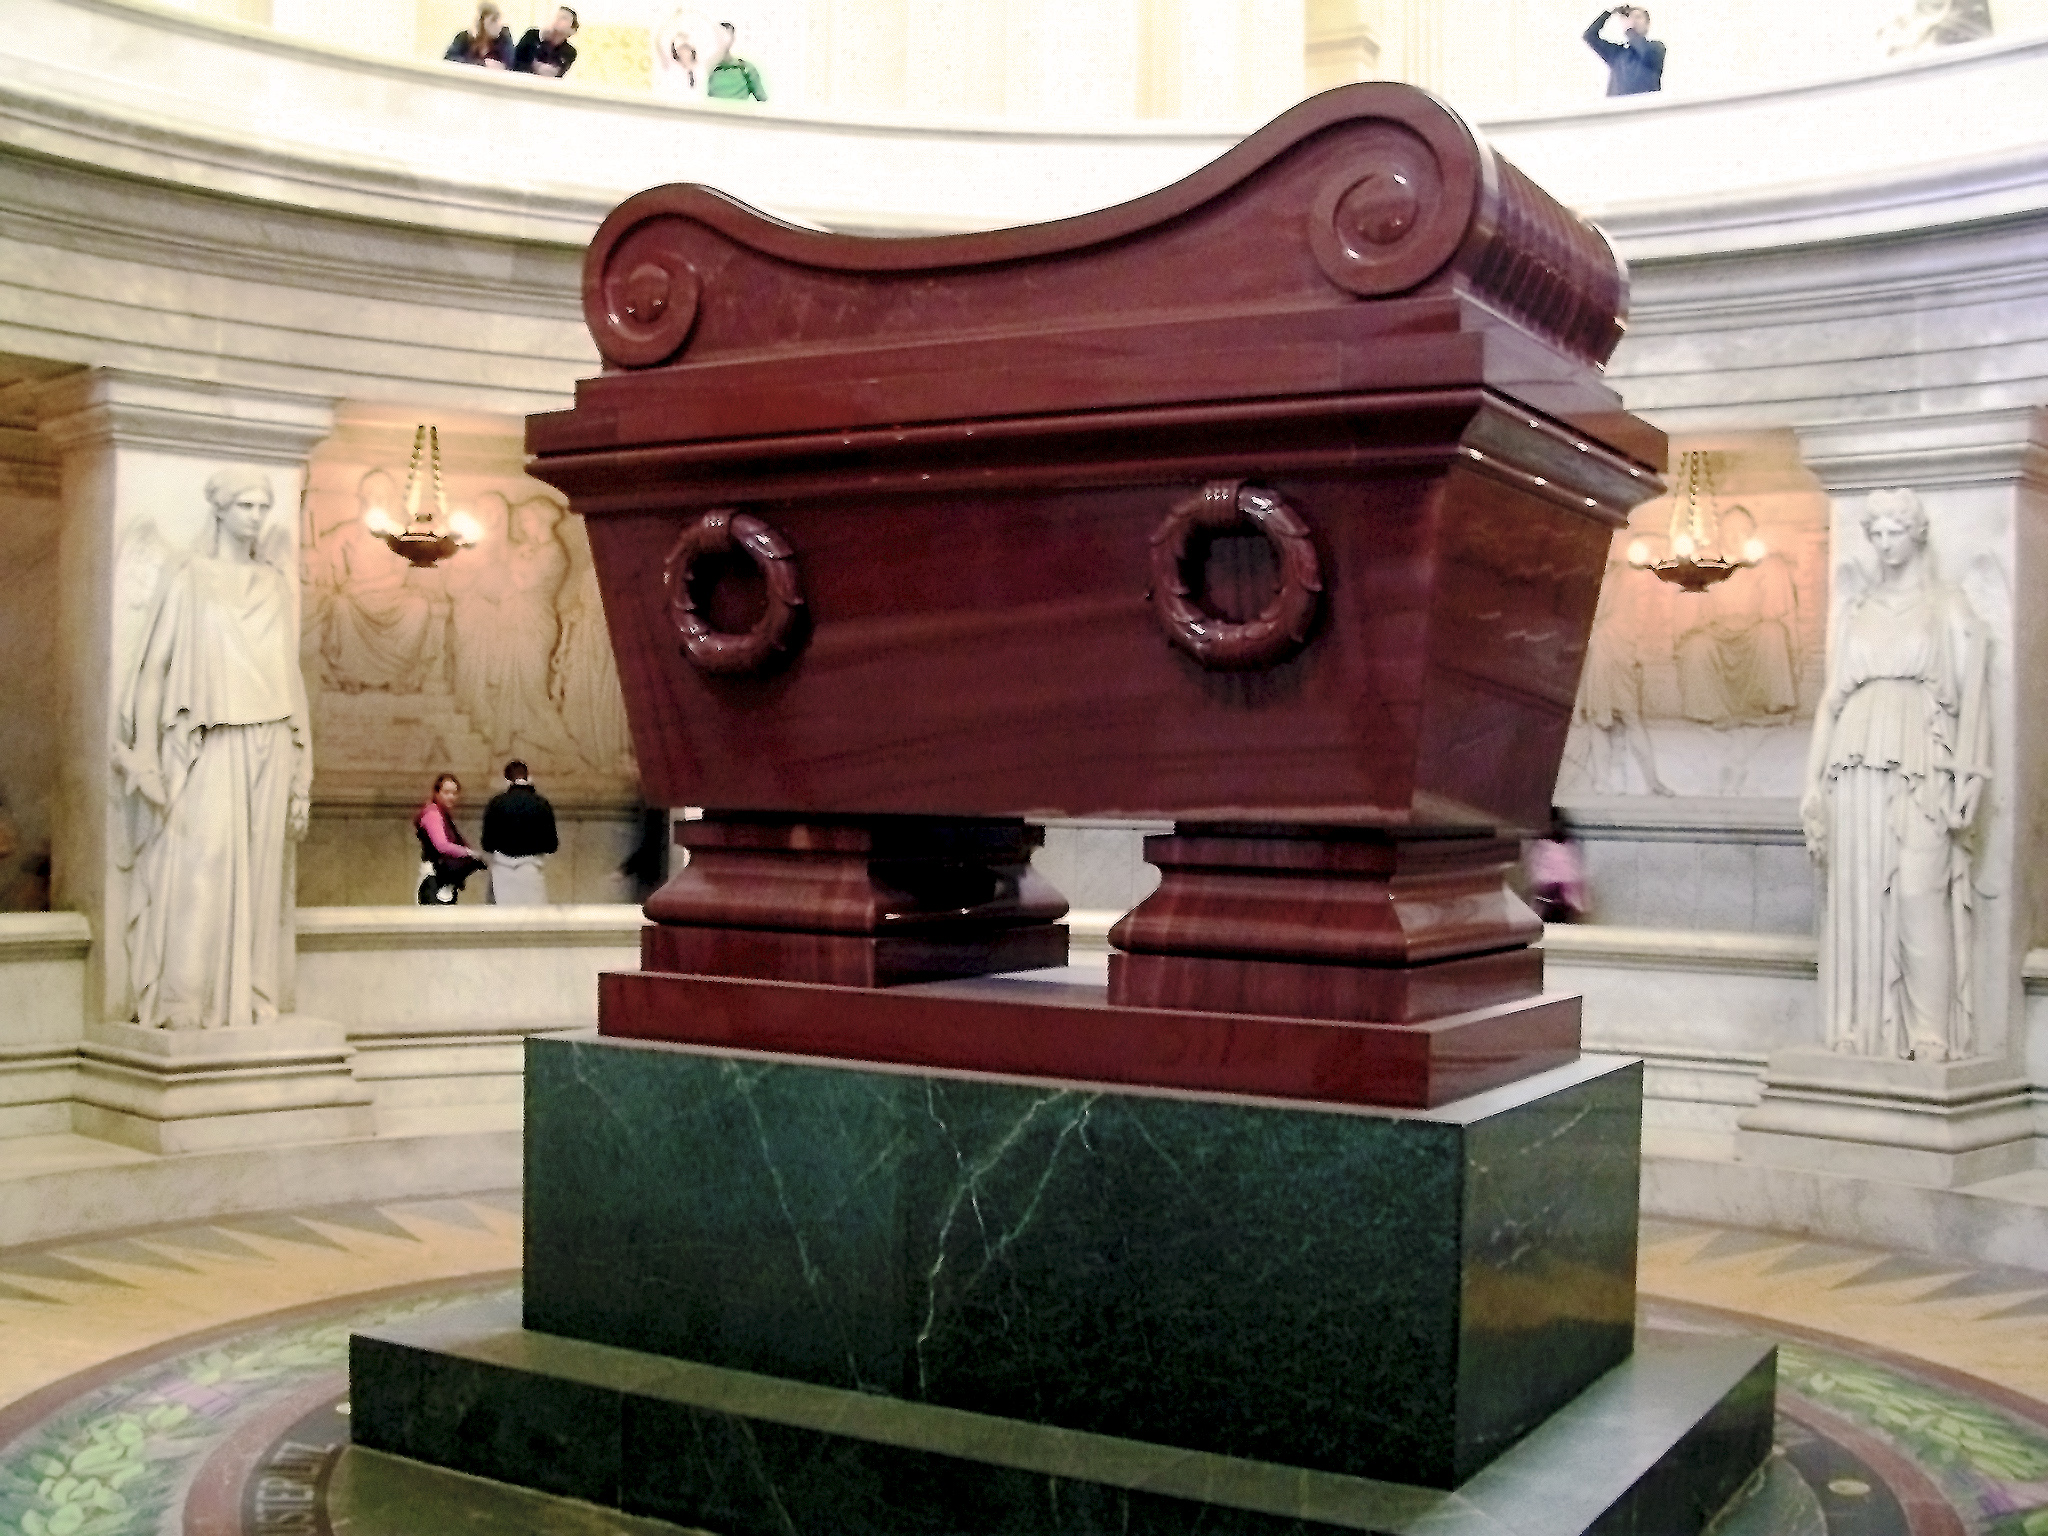 Photo of a large, shiny burgundy cuboid-shaped vessel raised on a dark green plinth. There are two female statues in the background either side of the vessel.